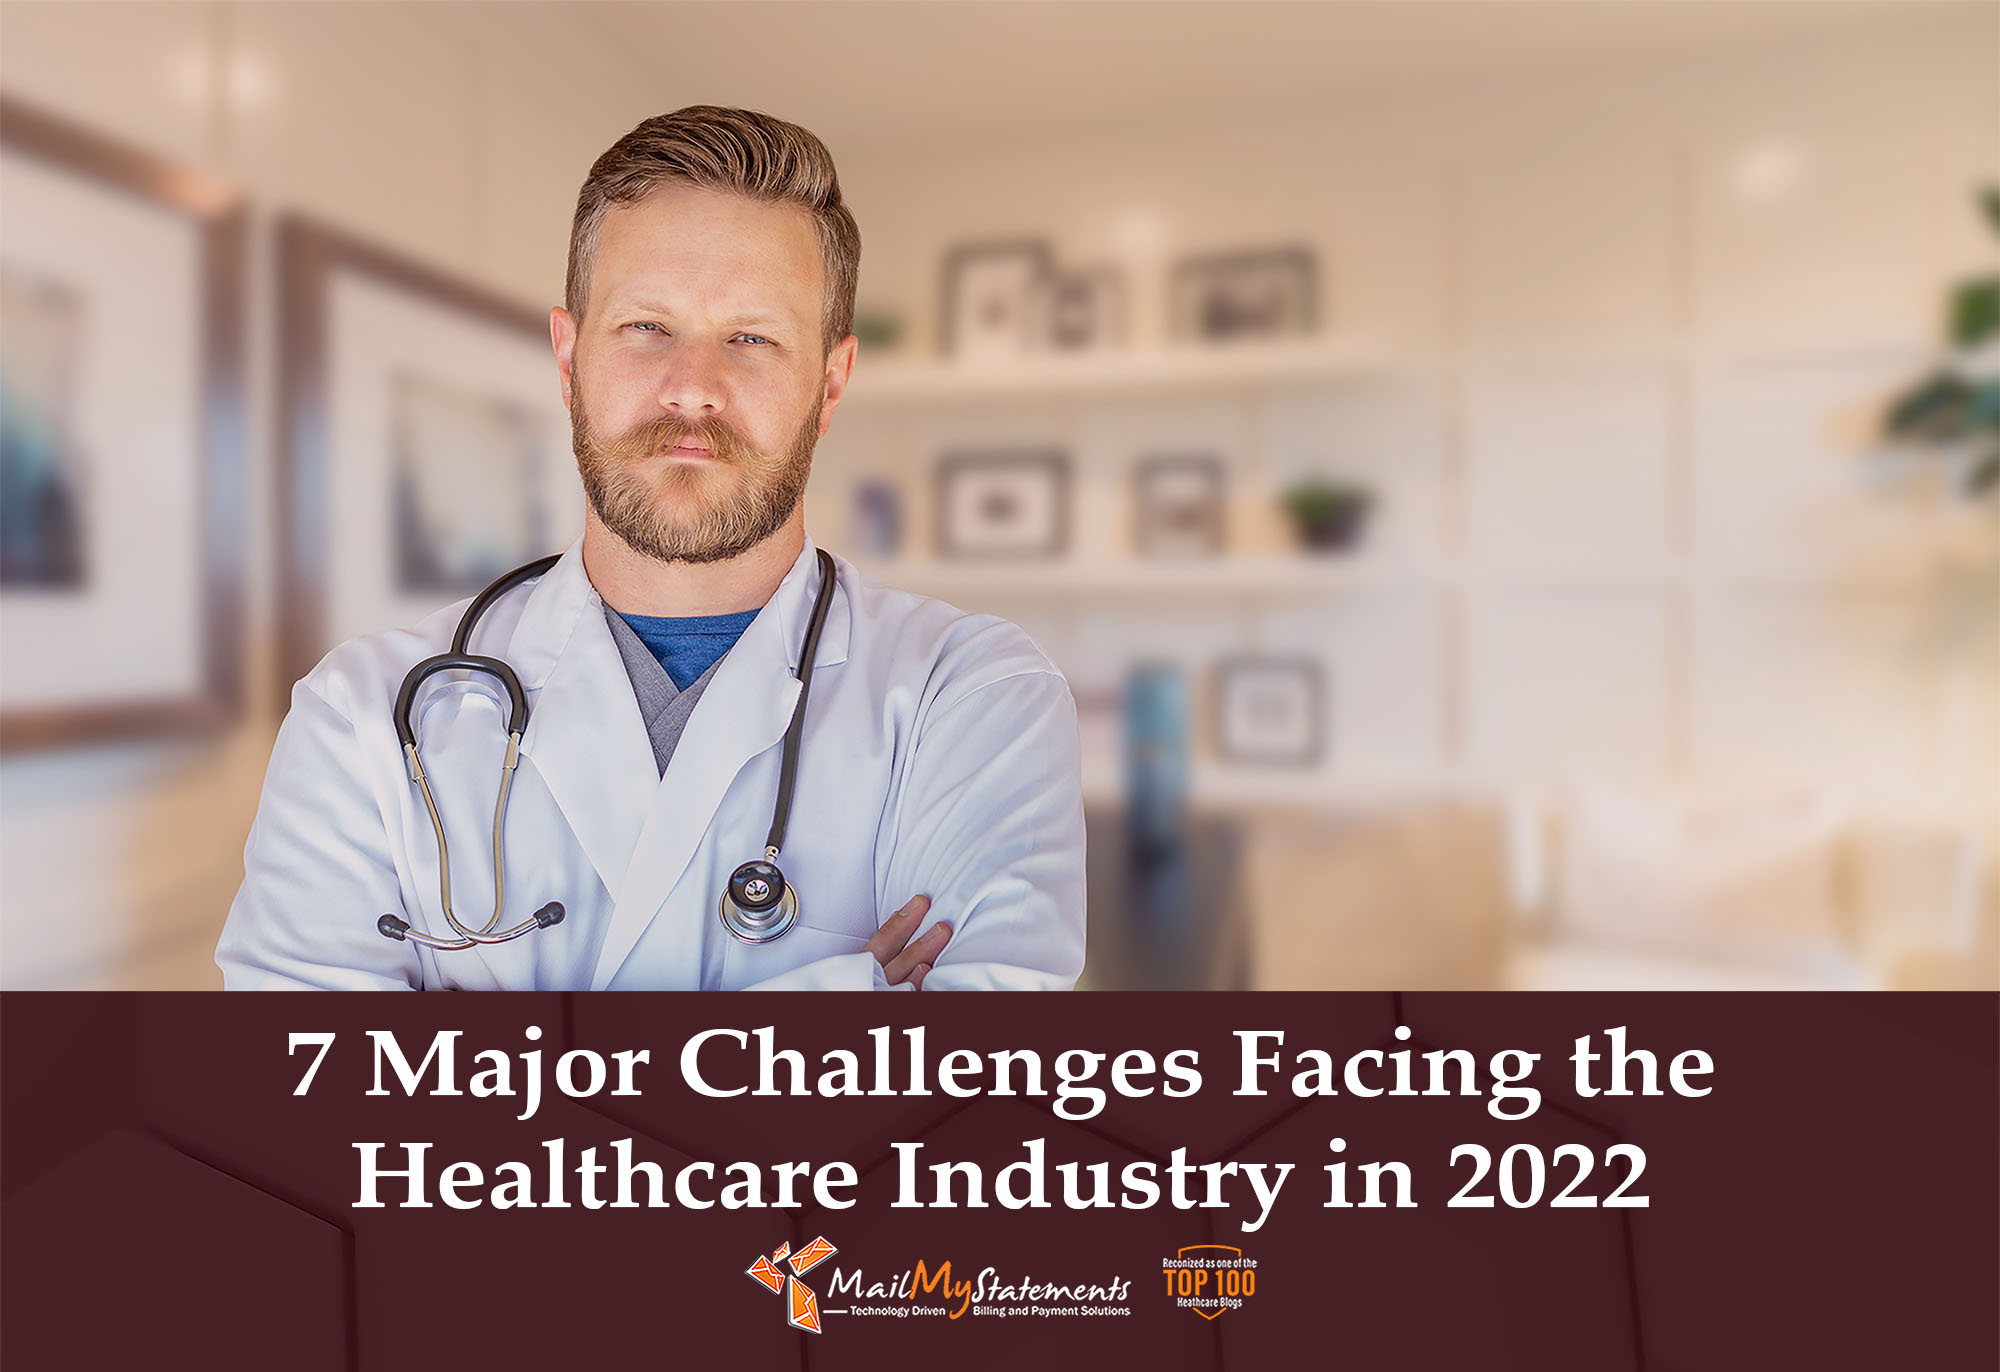 7 Major Challenges Facing the Healthcare Industry in 2022